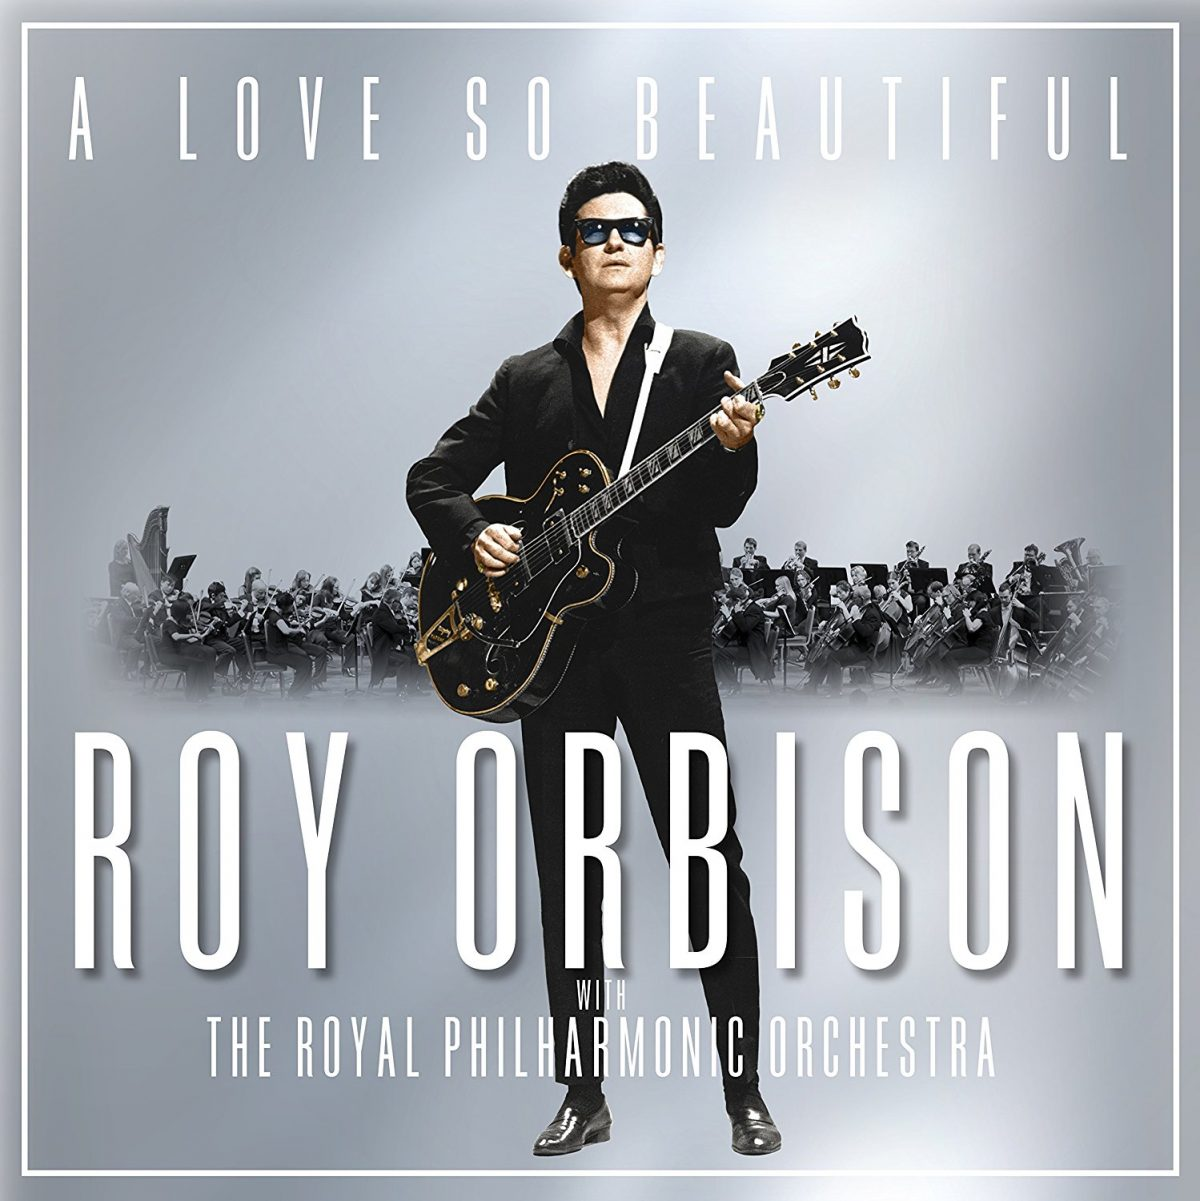 Roy Orbison With the Royal Philharmonic – A Love So Beautiful